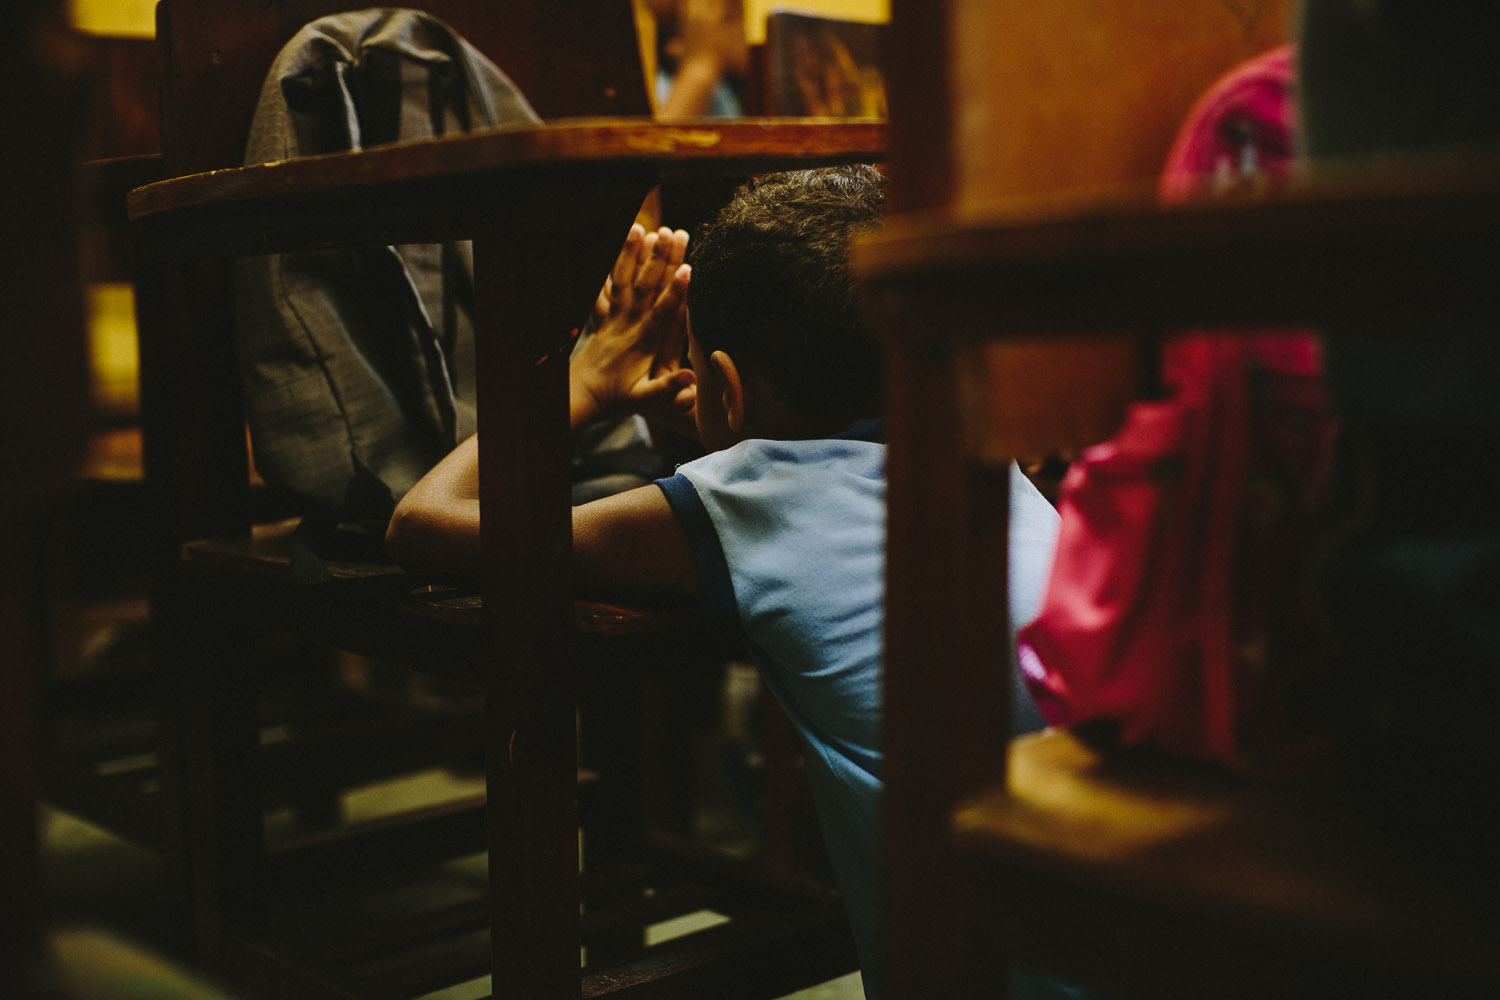 Prayer time is a daily part of class at the Compassion Center. Emidio during classes at the Compassion Center.